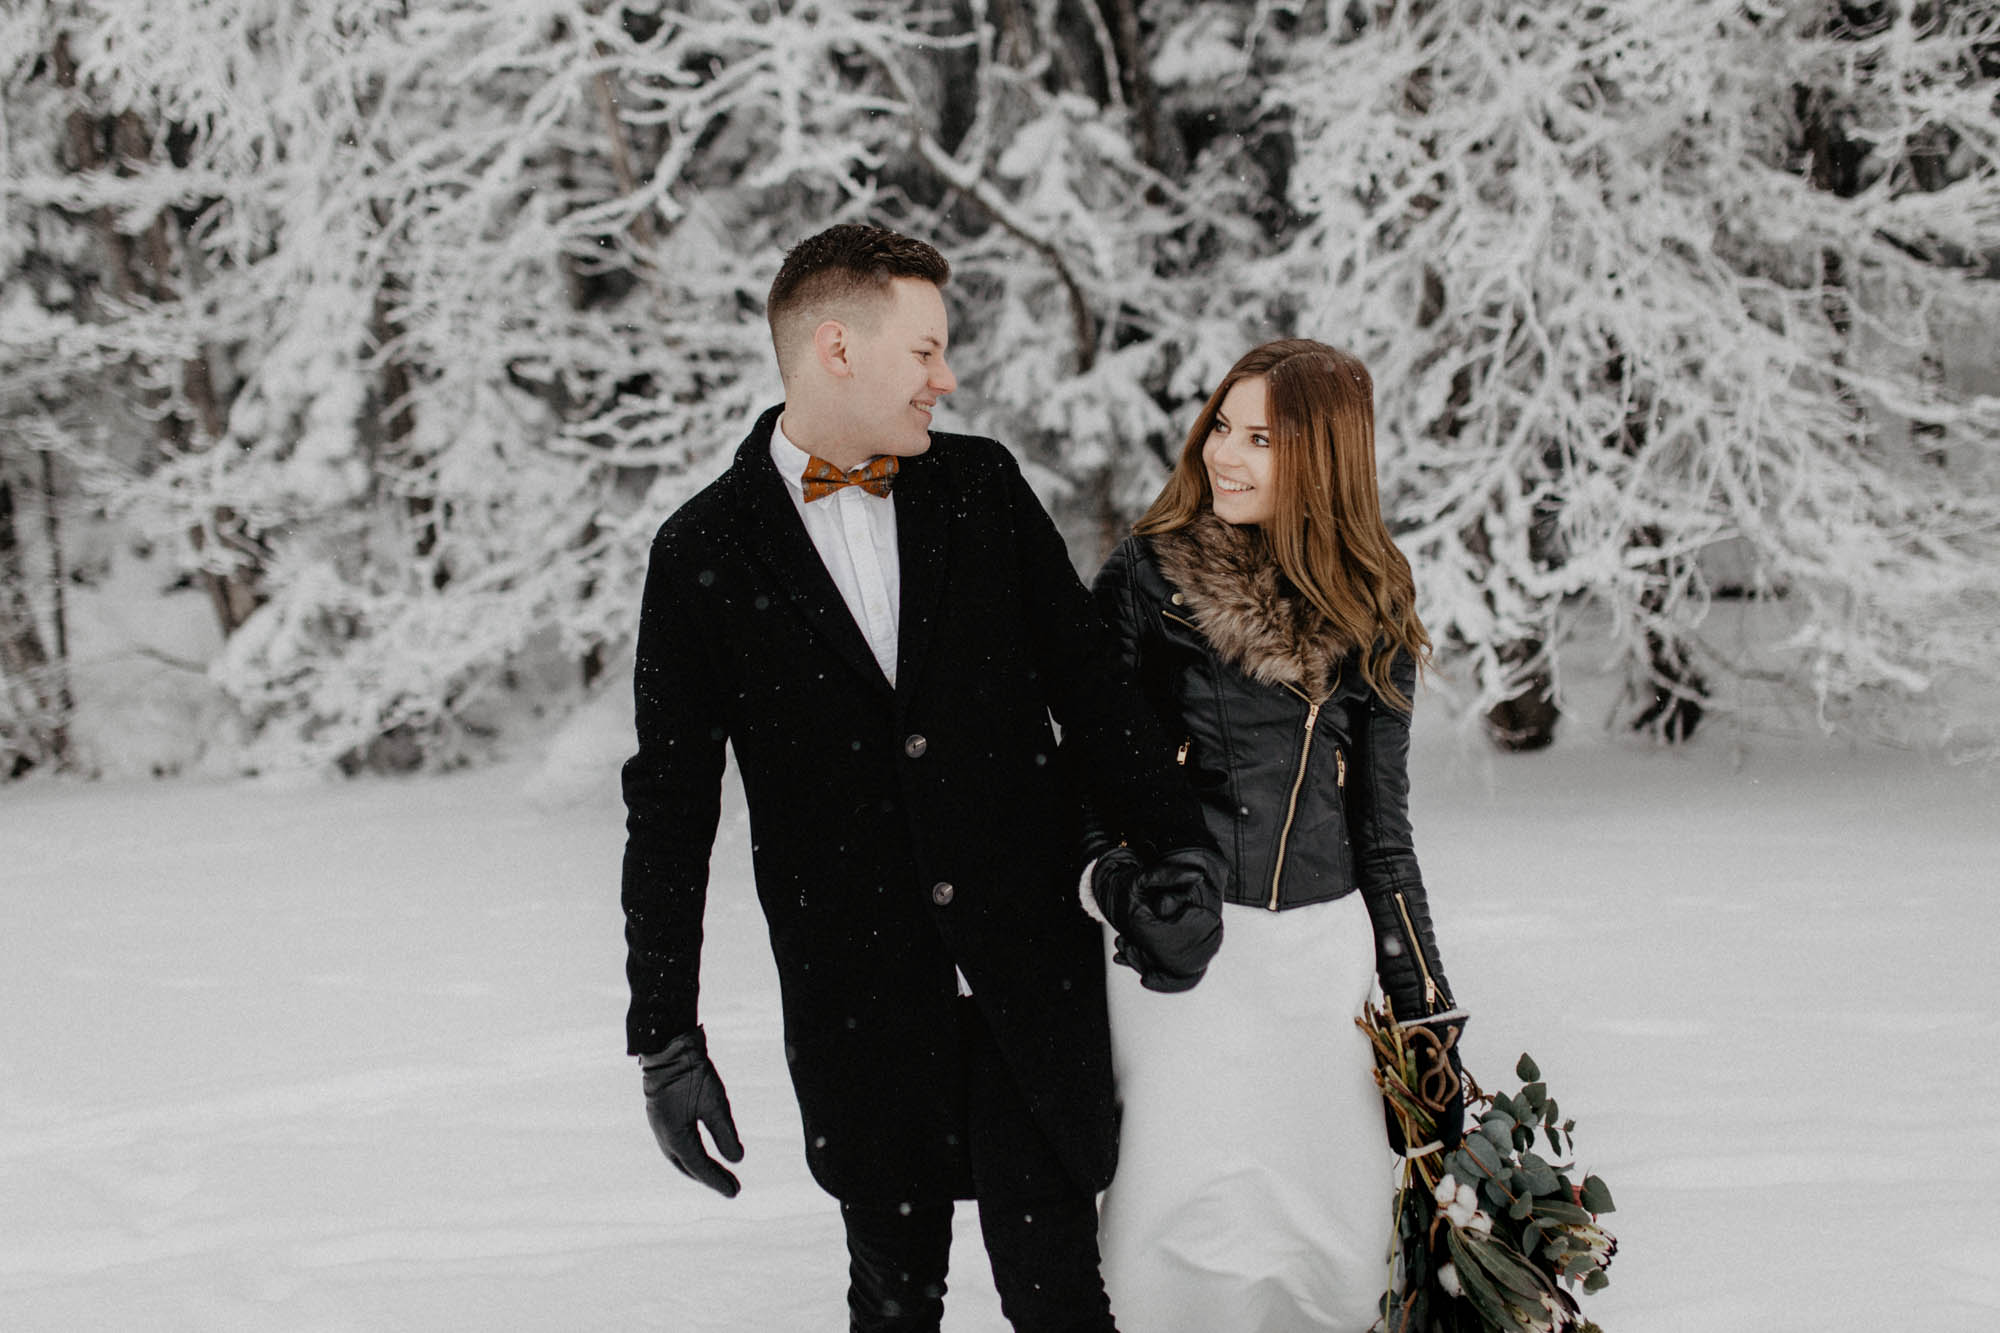 ashley_schulman_photography-winter_wedding_tampere-43.jpg